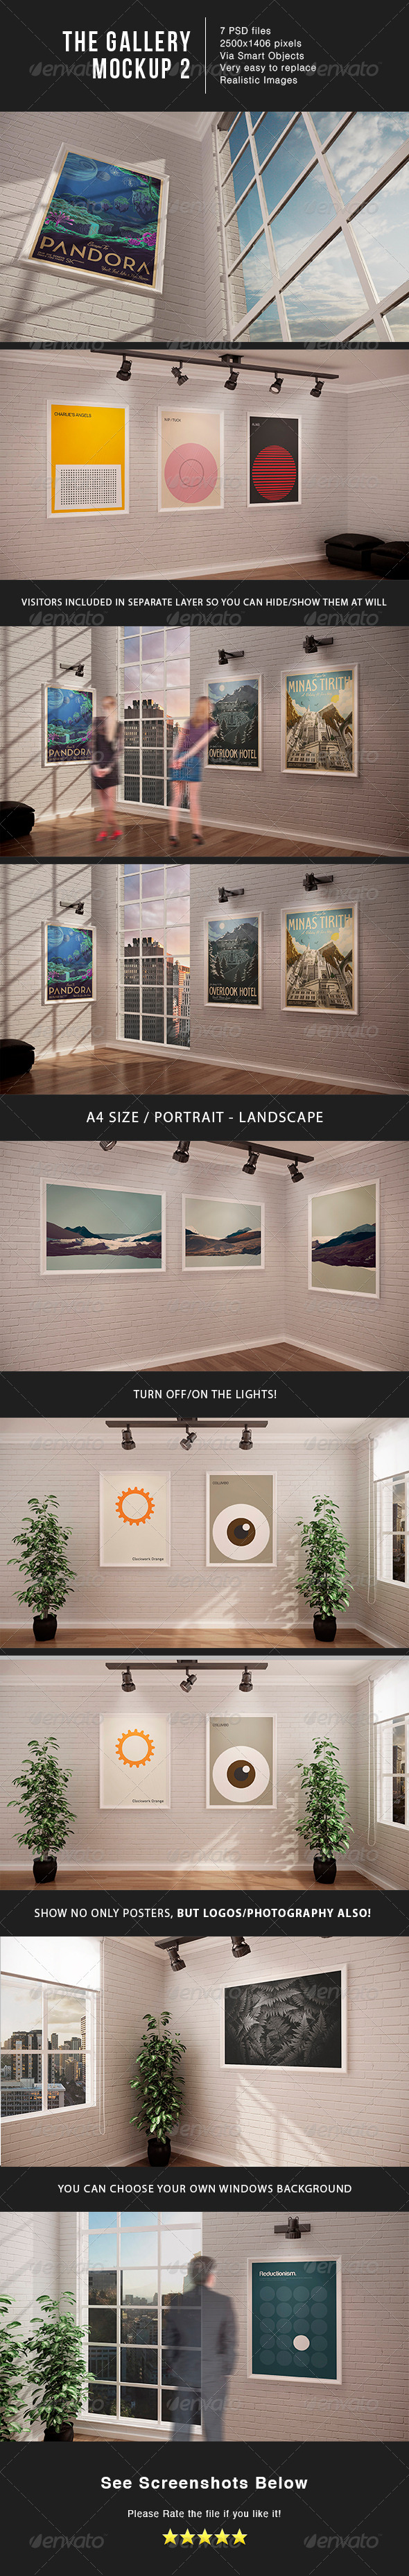 The Gallery MockUp 2 - Posters Print